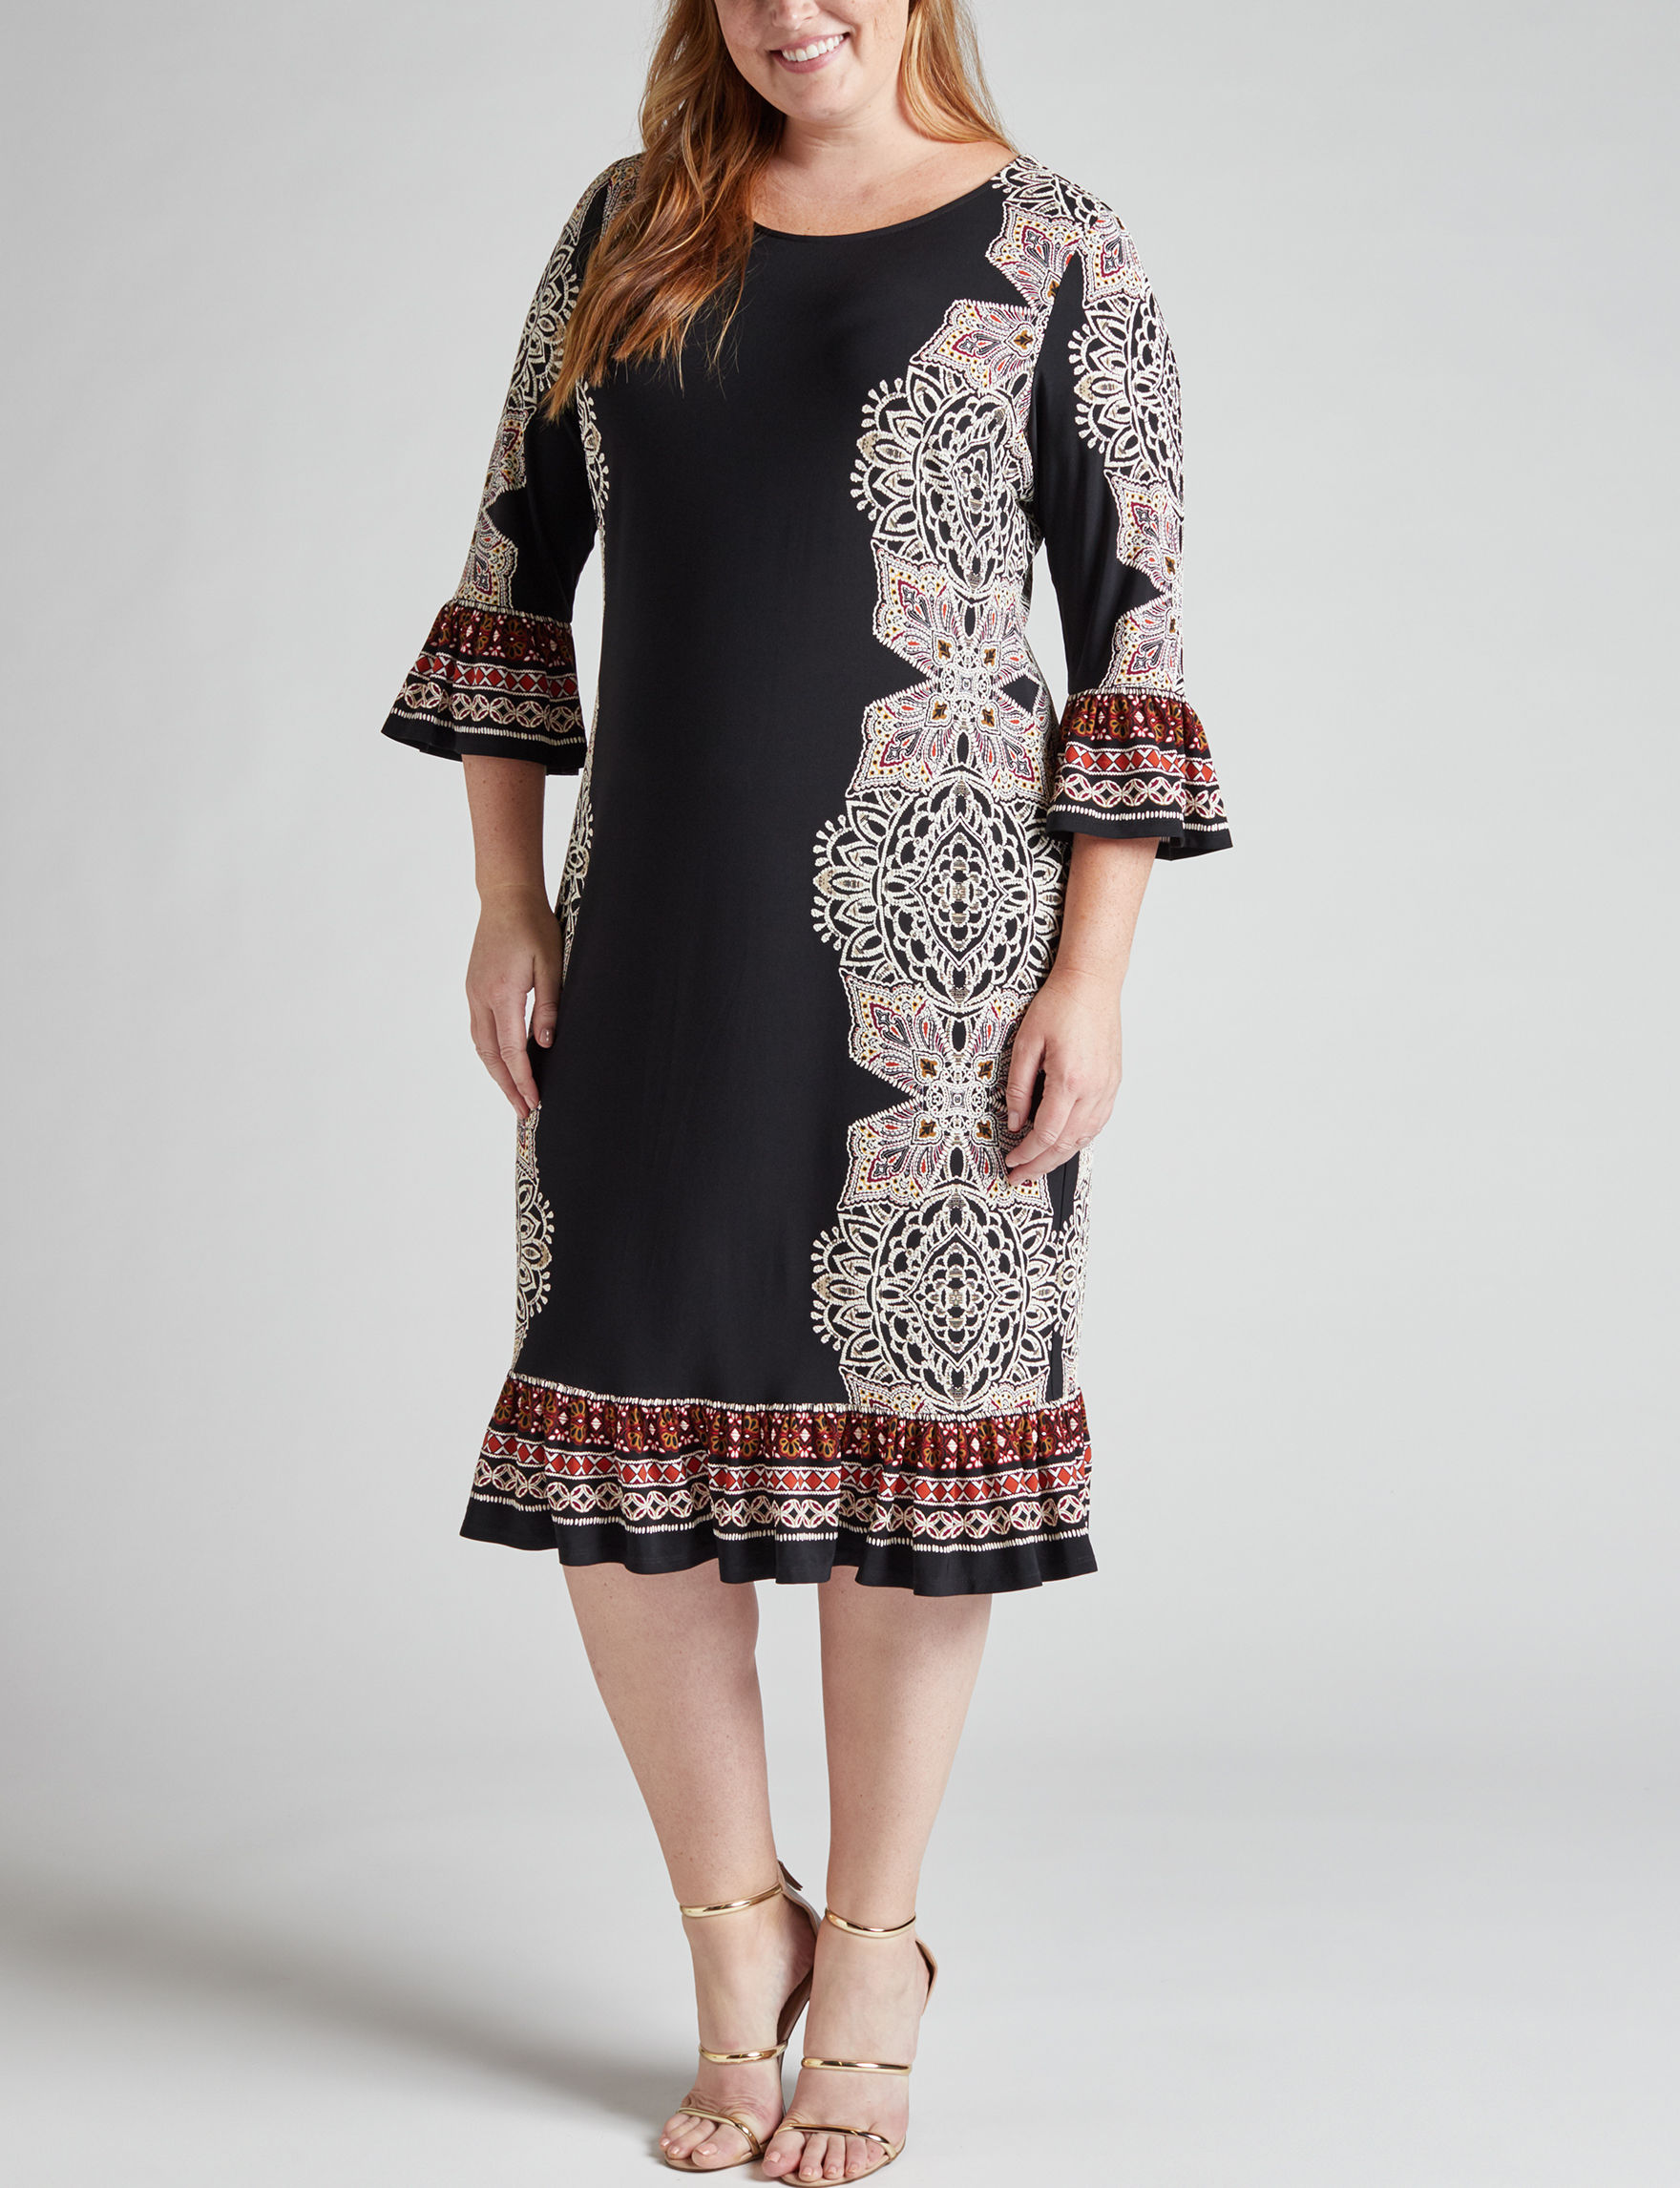 Glamour Black Multi Everyday & Casual Shift Dresses